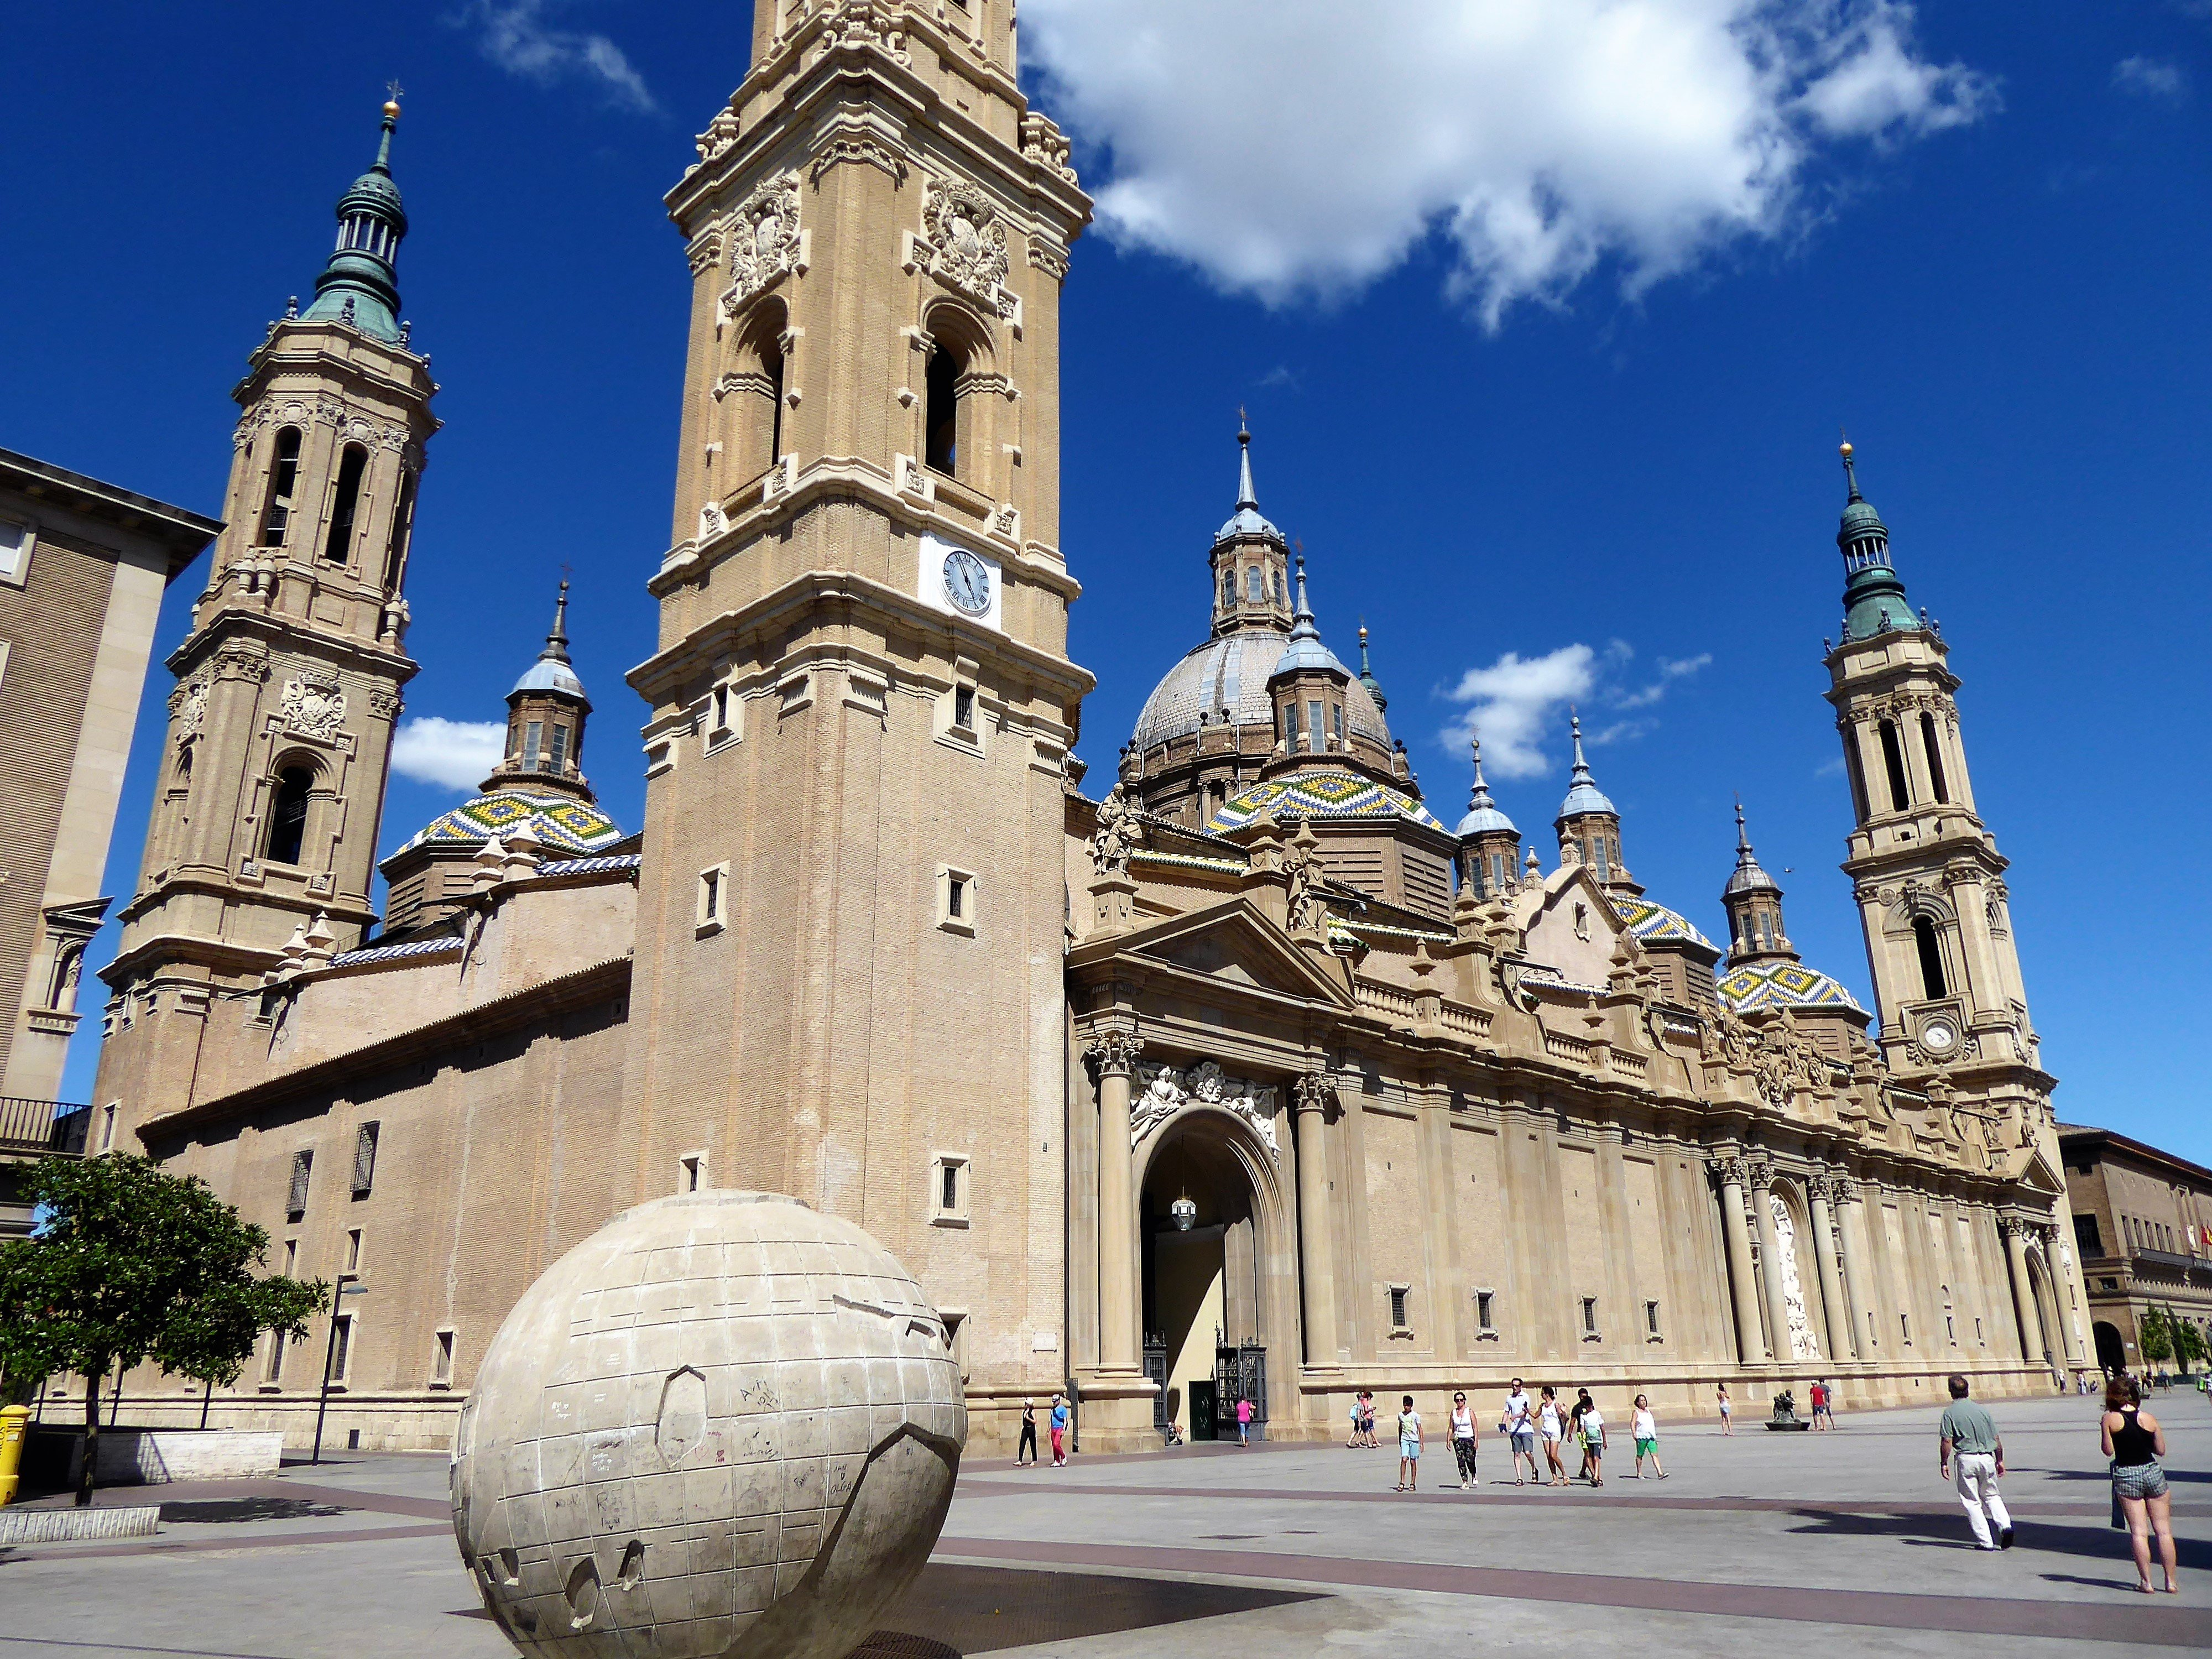 Cathedral-Basilica of Our Lady of the Pillar - Zaragoza